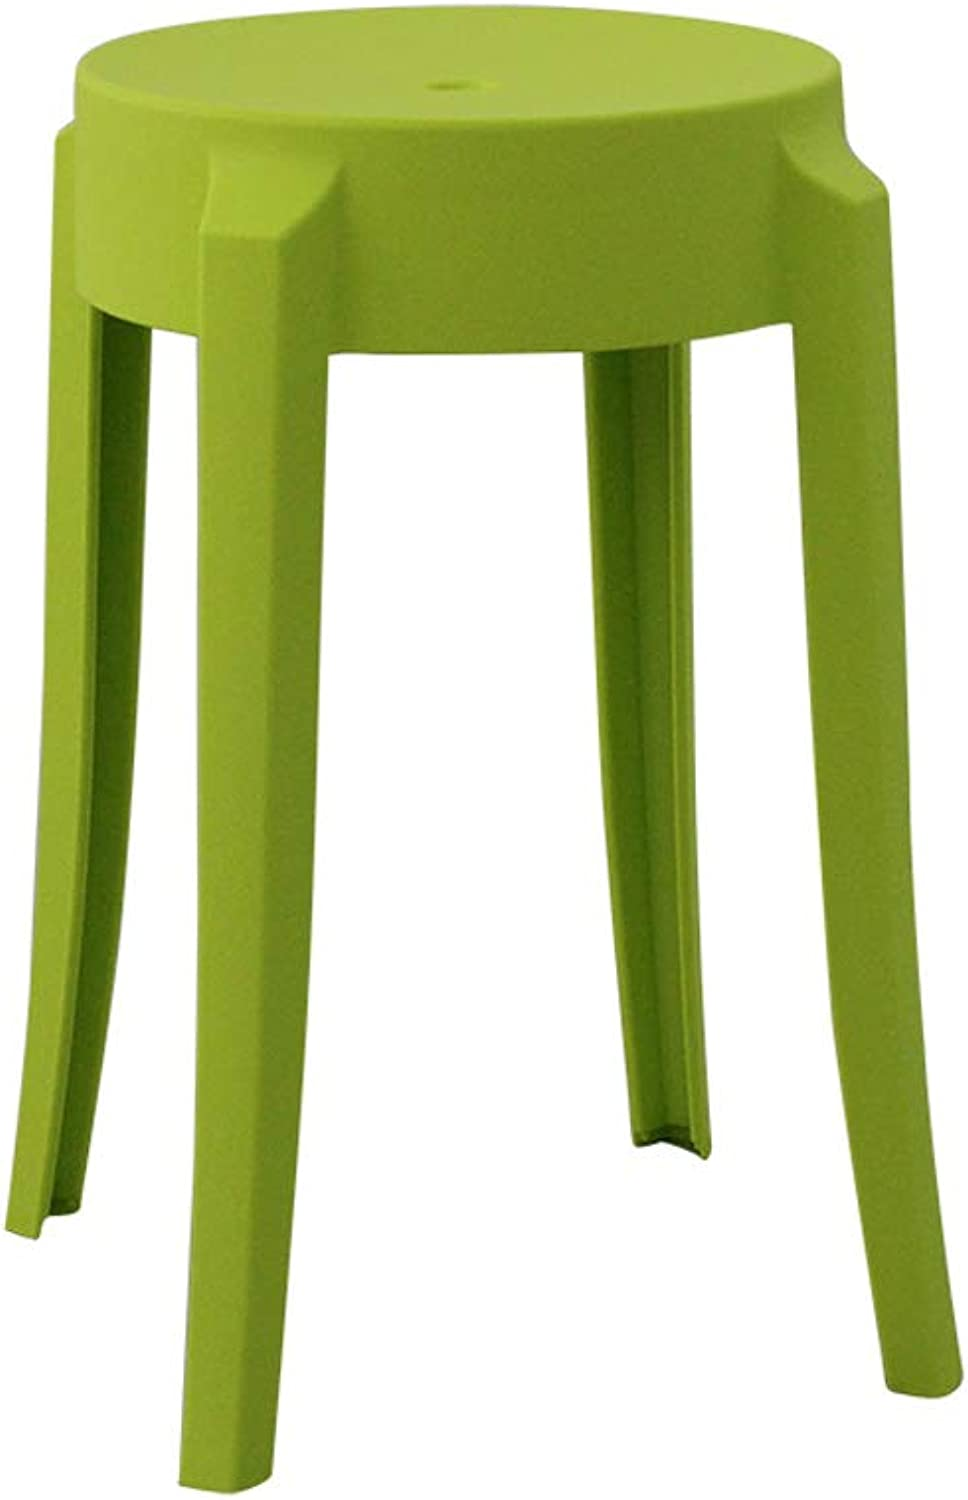 HLJ Simple Plastic Stool Fashion Stool Personality Home High Stool Thickening Creative Dining Table Stool European Chair